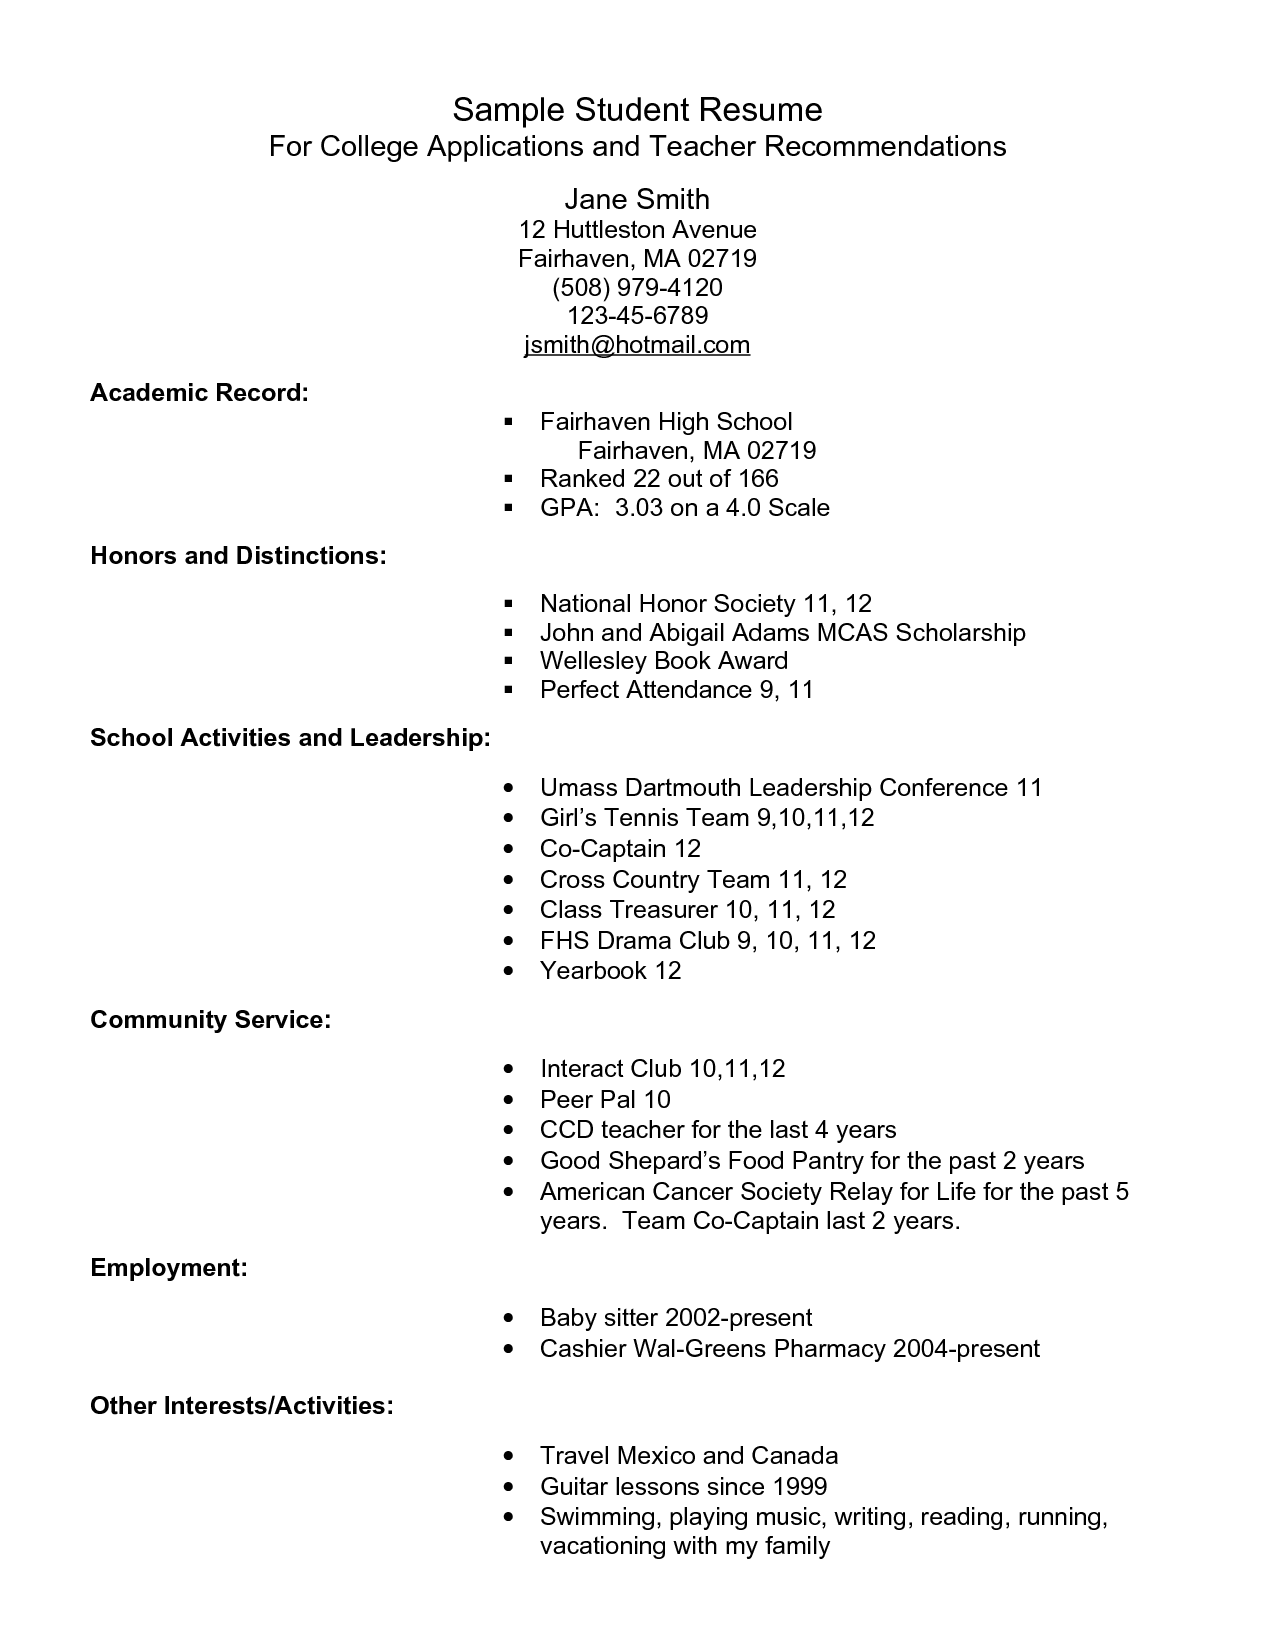 example resume for high school students for college applications sample student resume pdf by